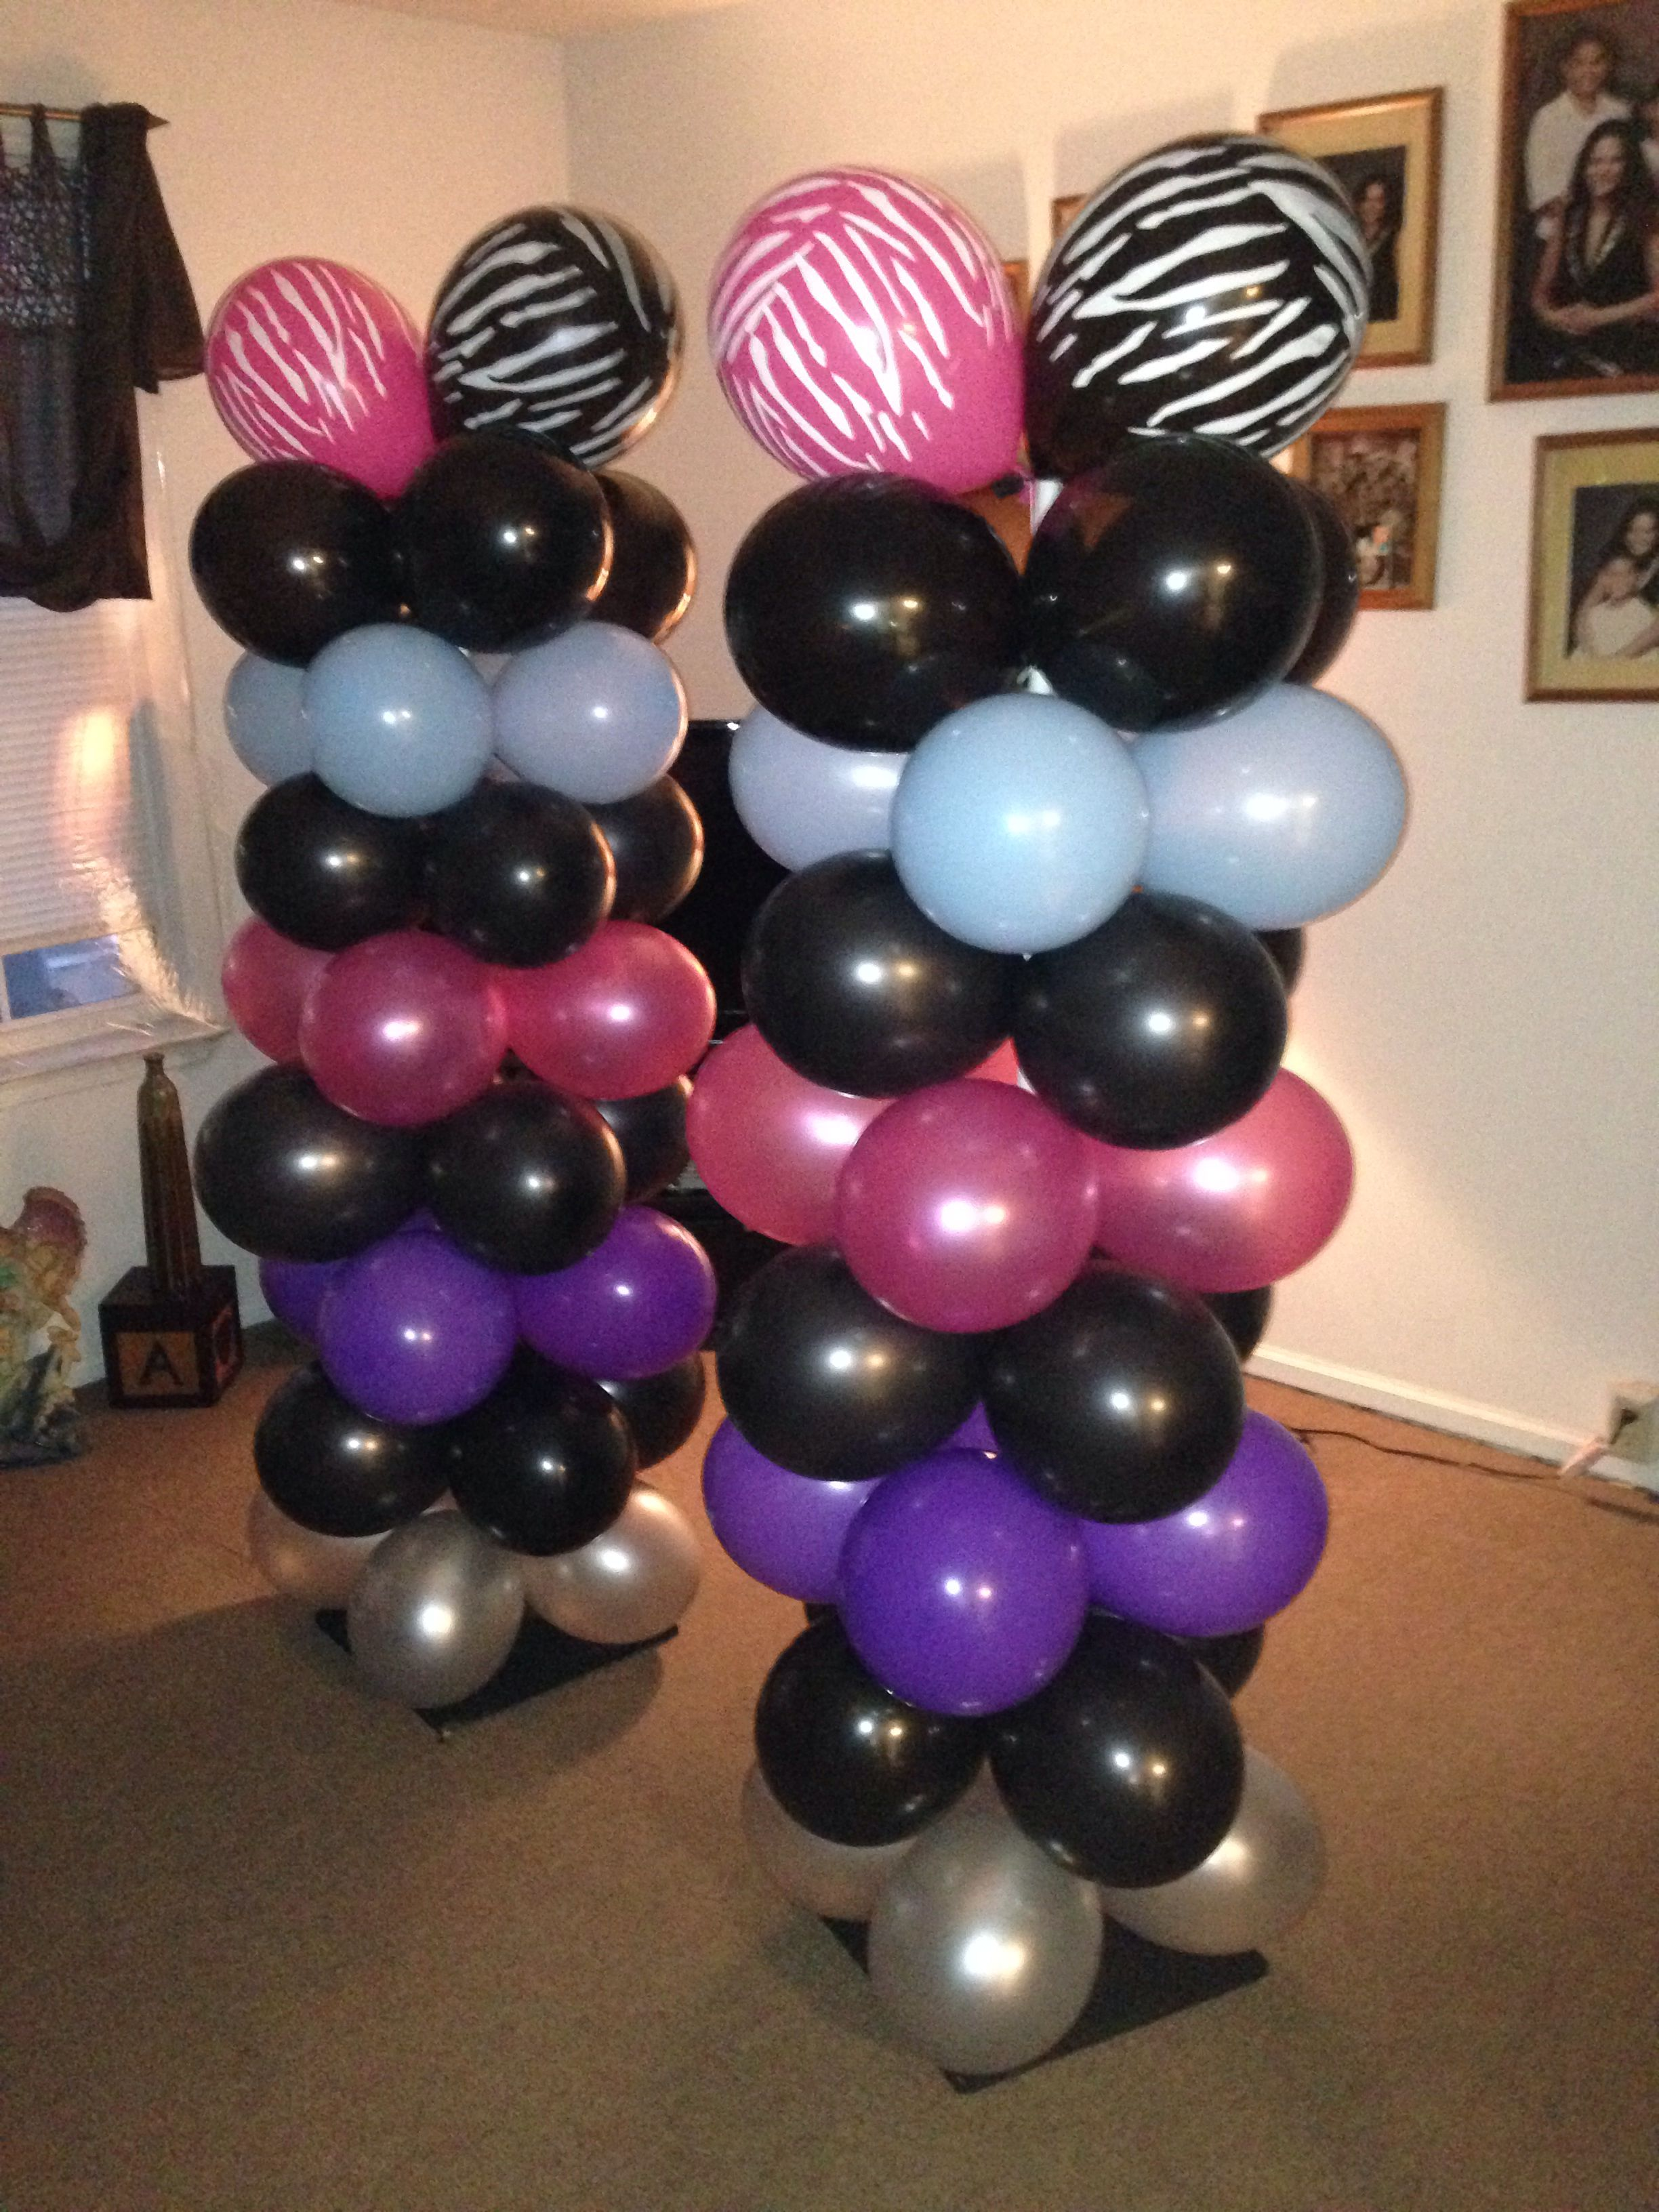 Balloon Columns For A Rockstar Party This Was 8 Rows With